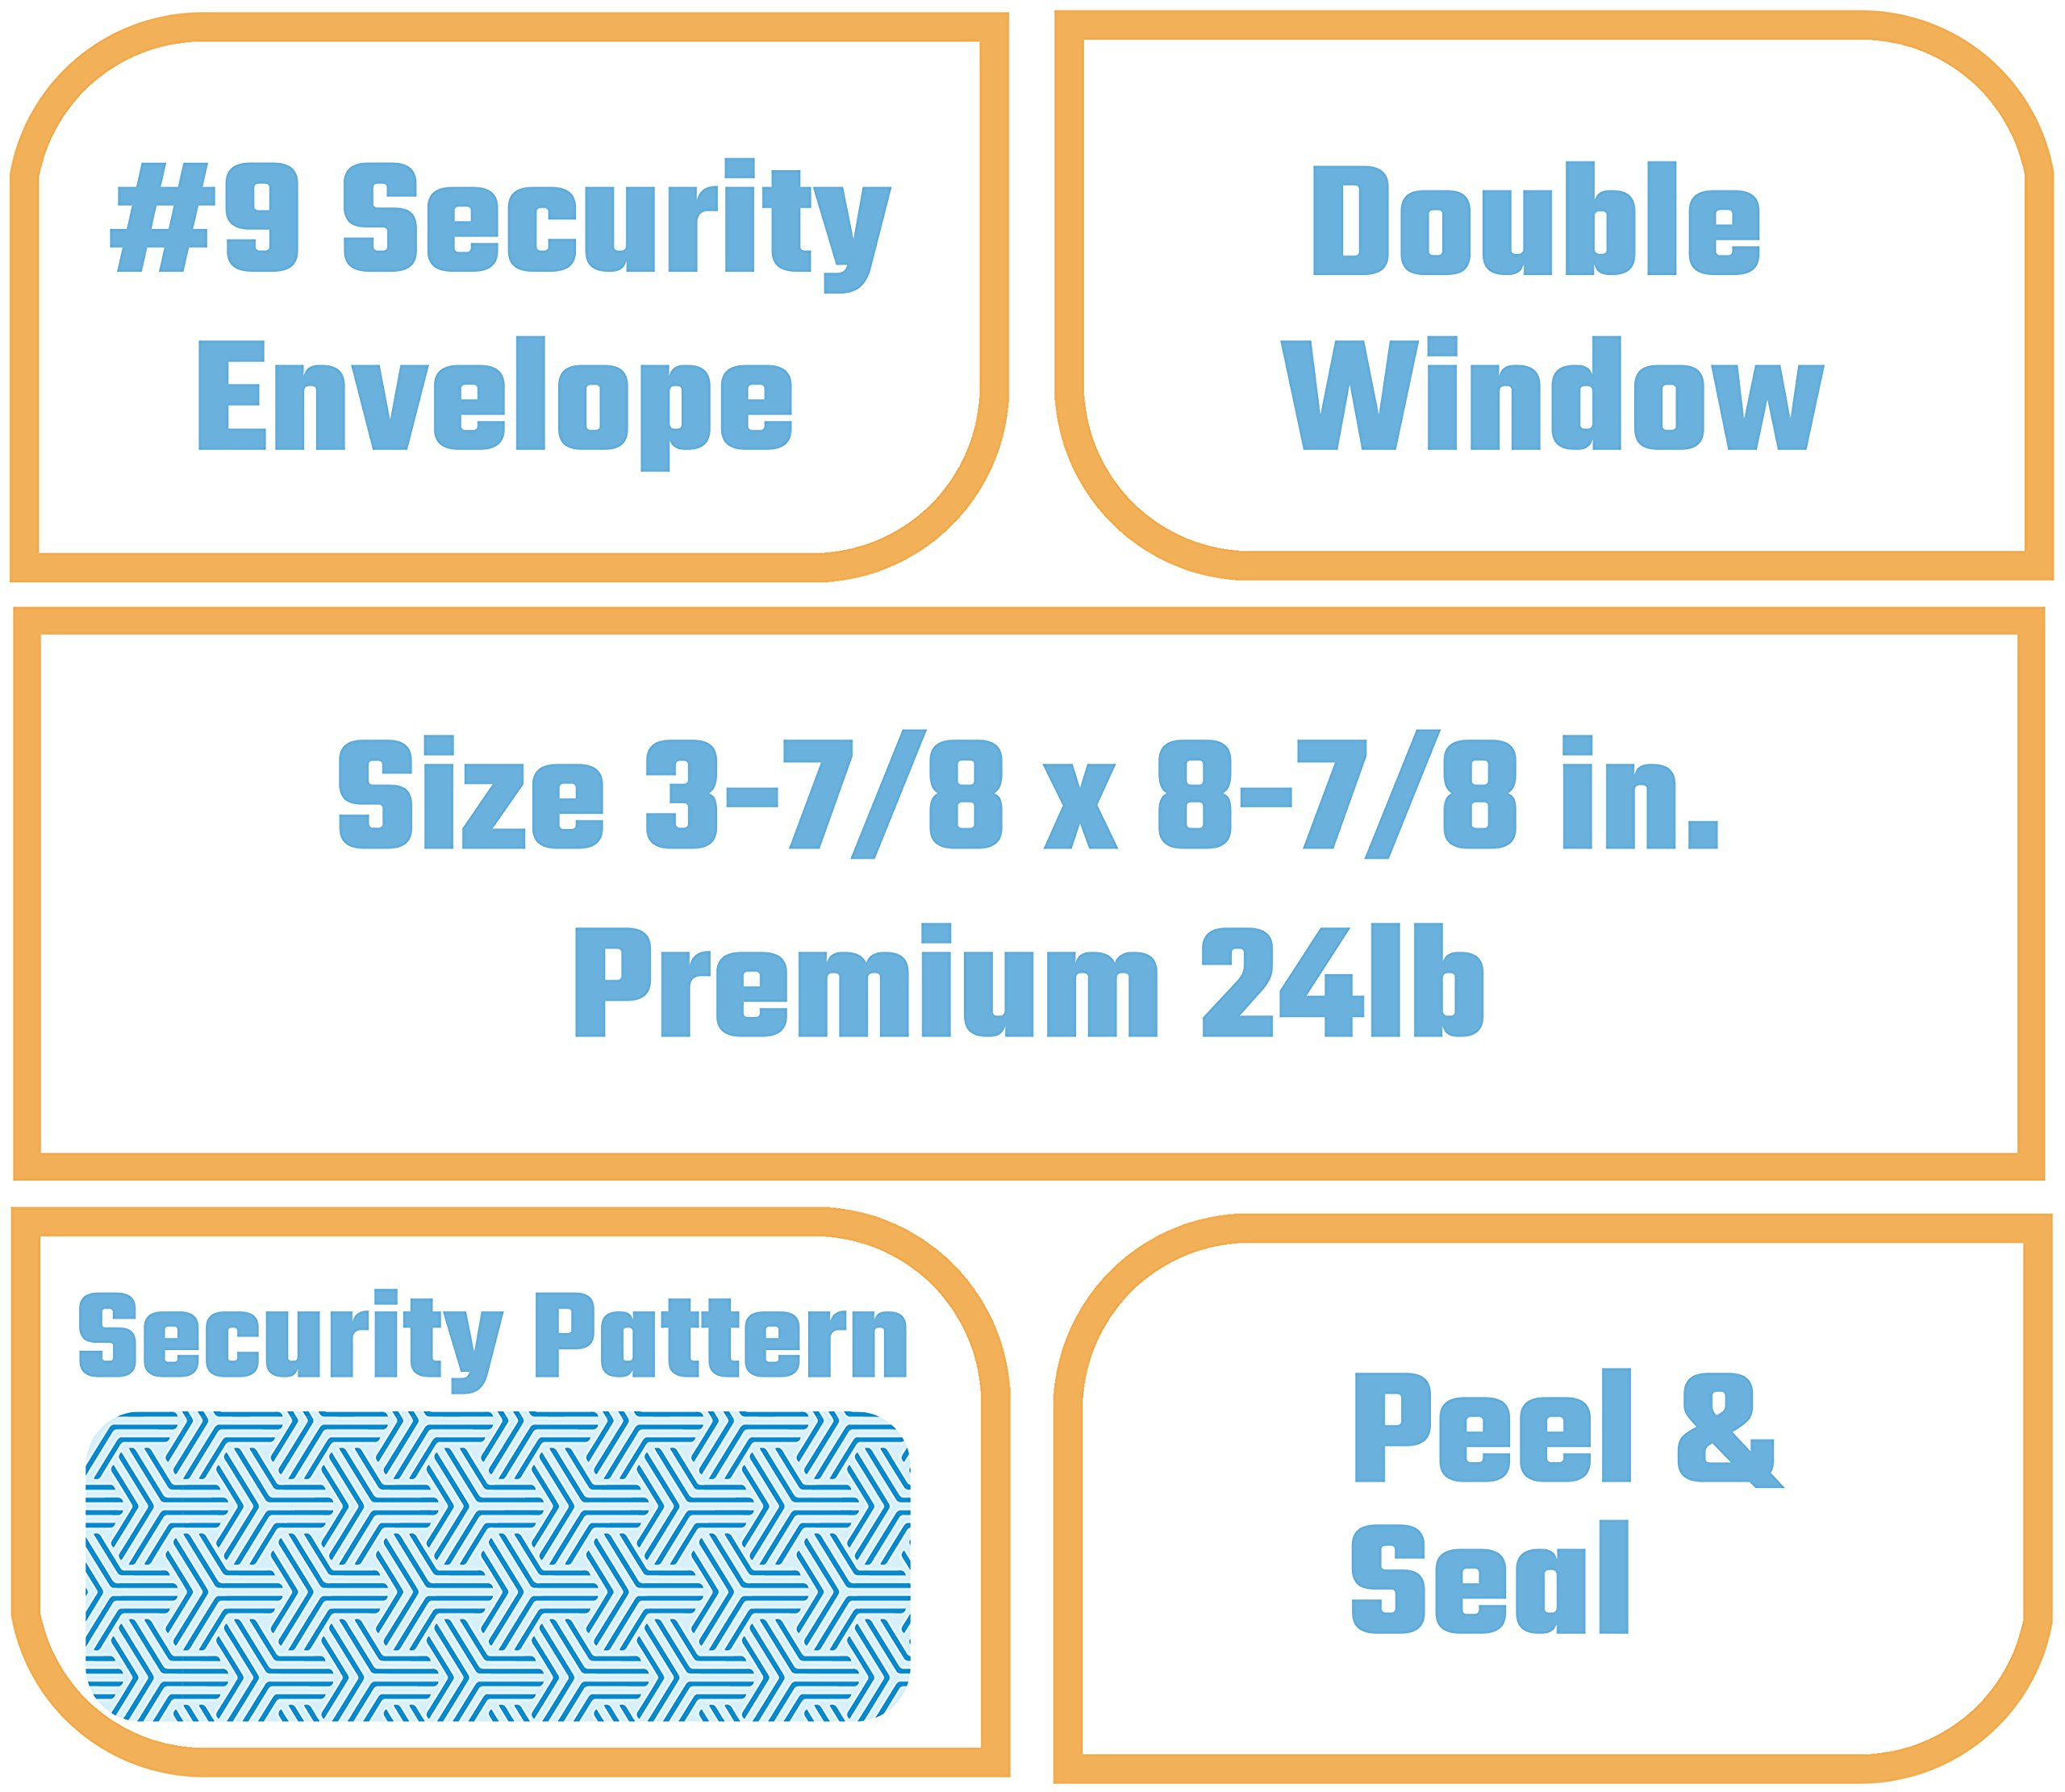 Office Deed Double Window SELF SEAL Security Envelopes - Quickbooks invoice envelope size